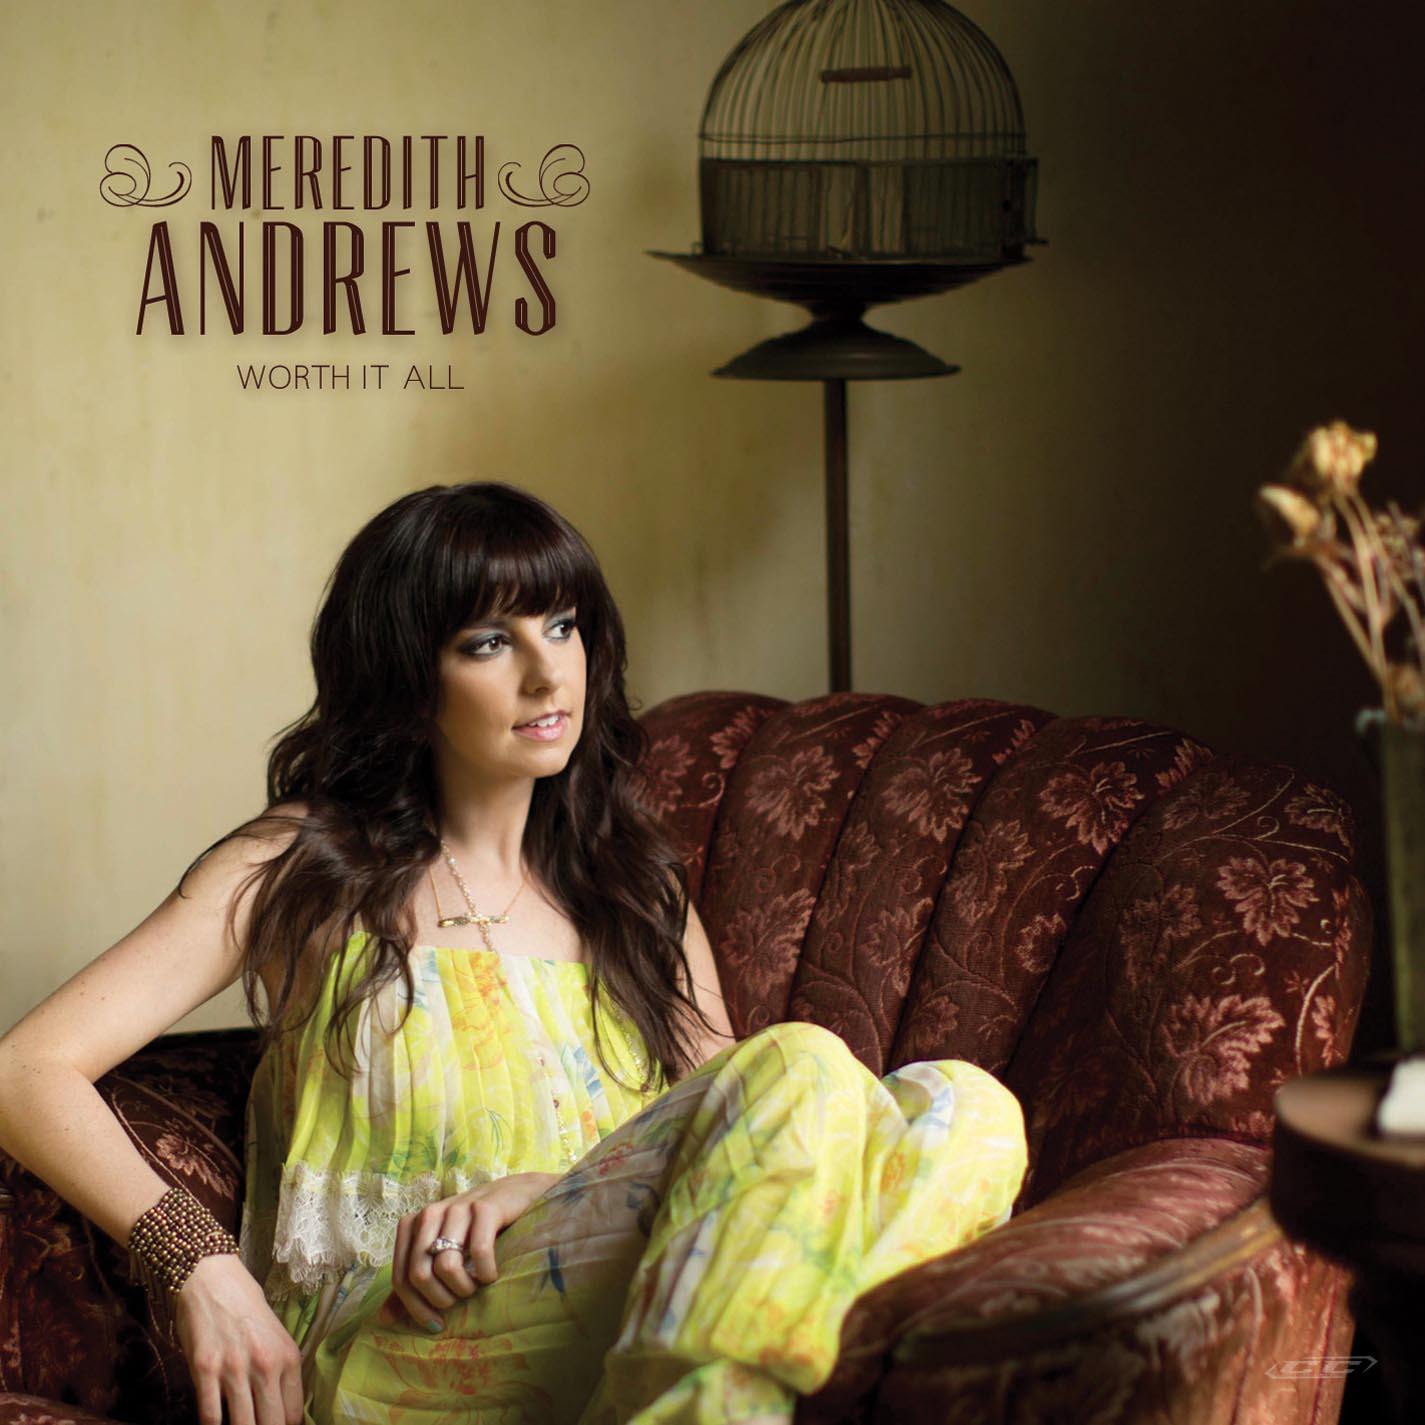 Meredith Andrews - Worth it all 2013 English Christian Album Download